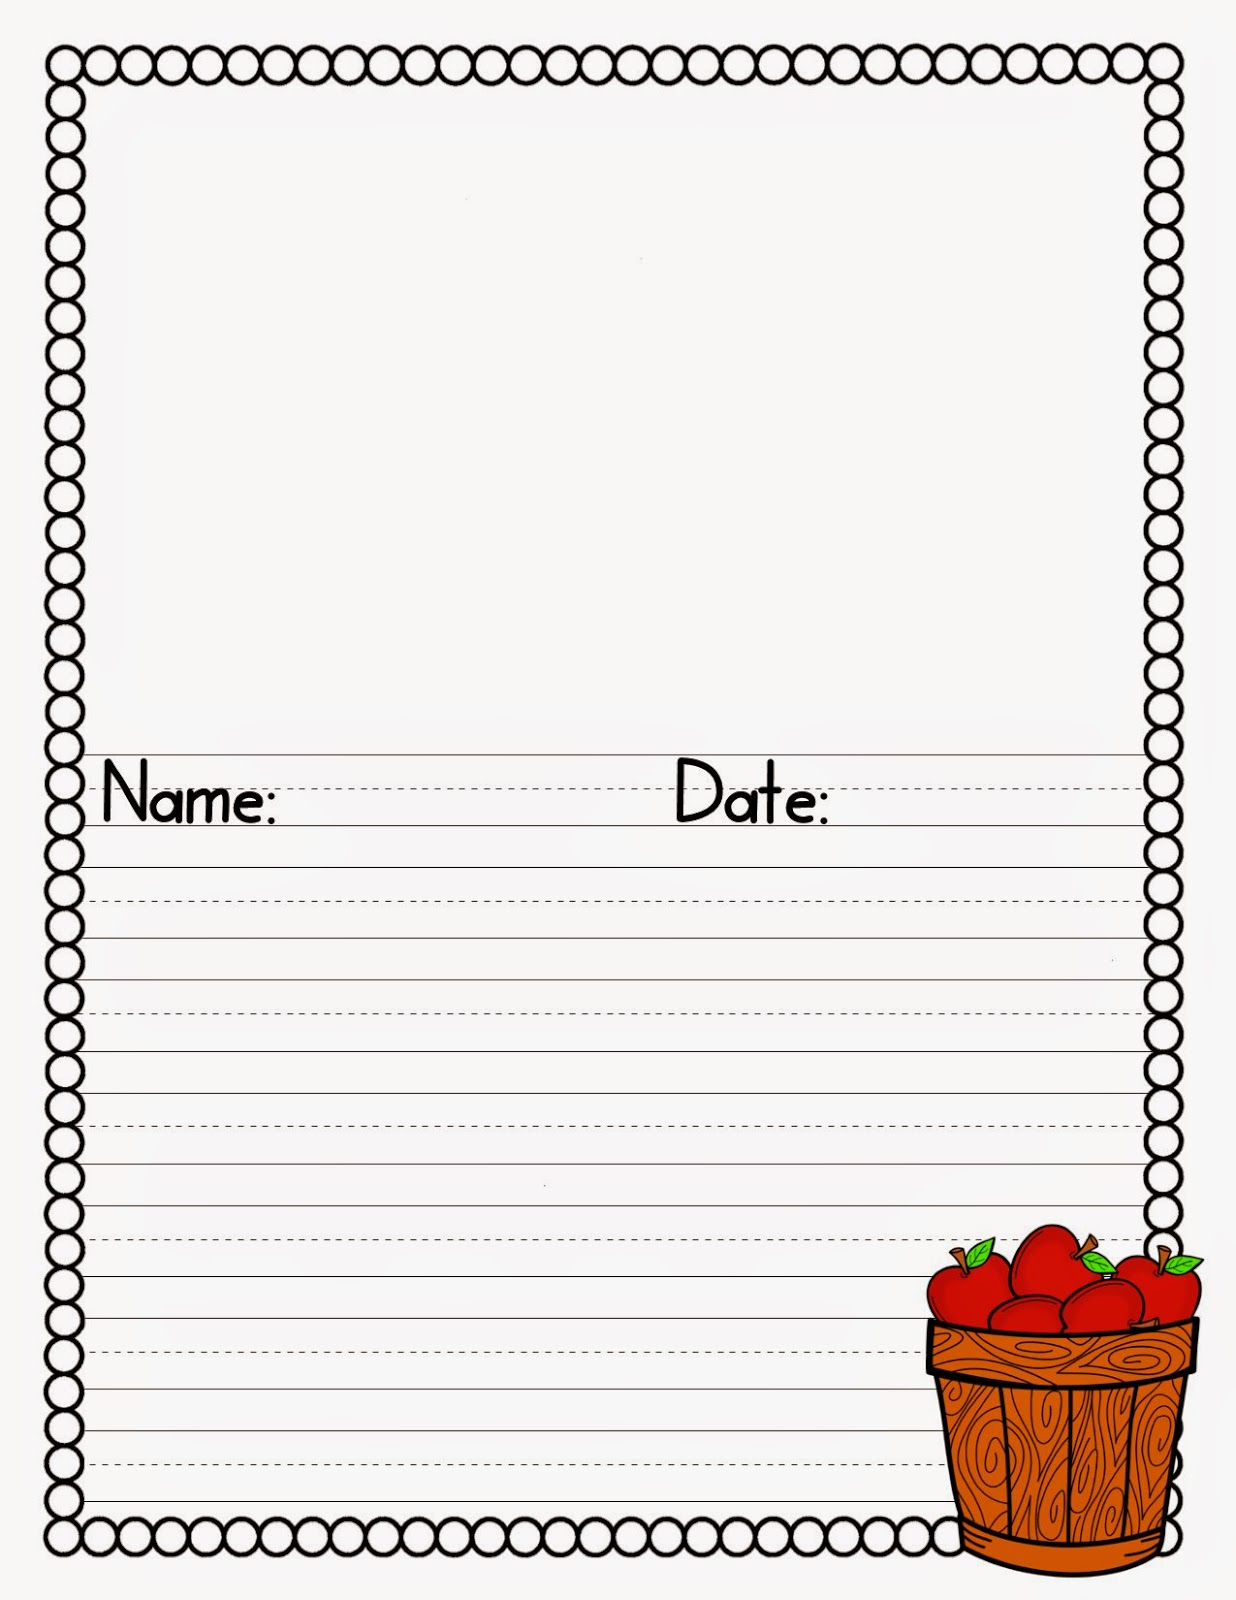 http://www.teacherspayteachers.com/Product/Apple-Writing-1428198